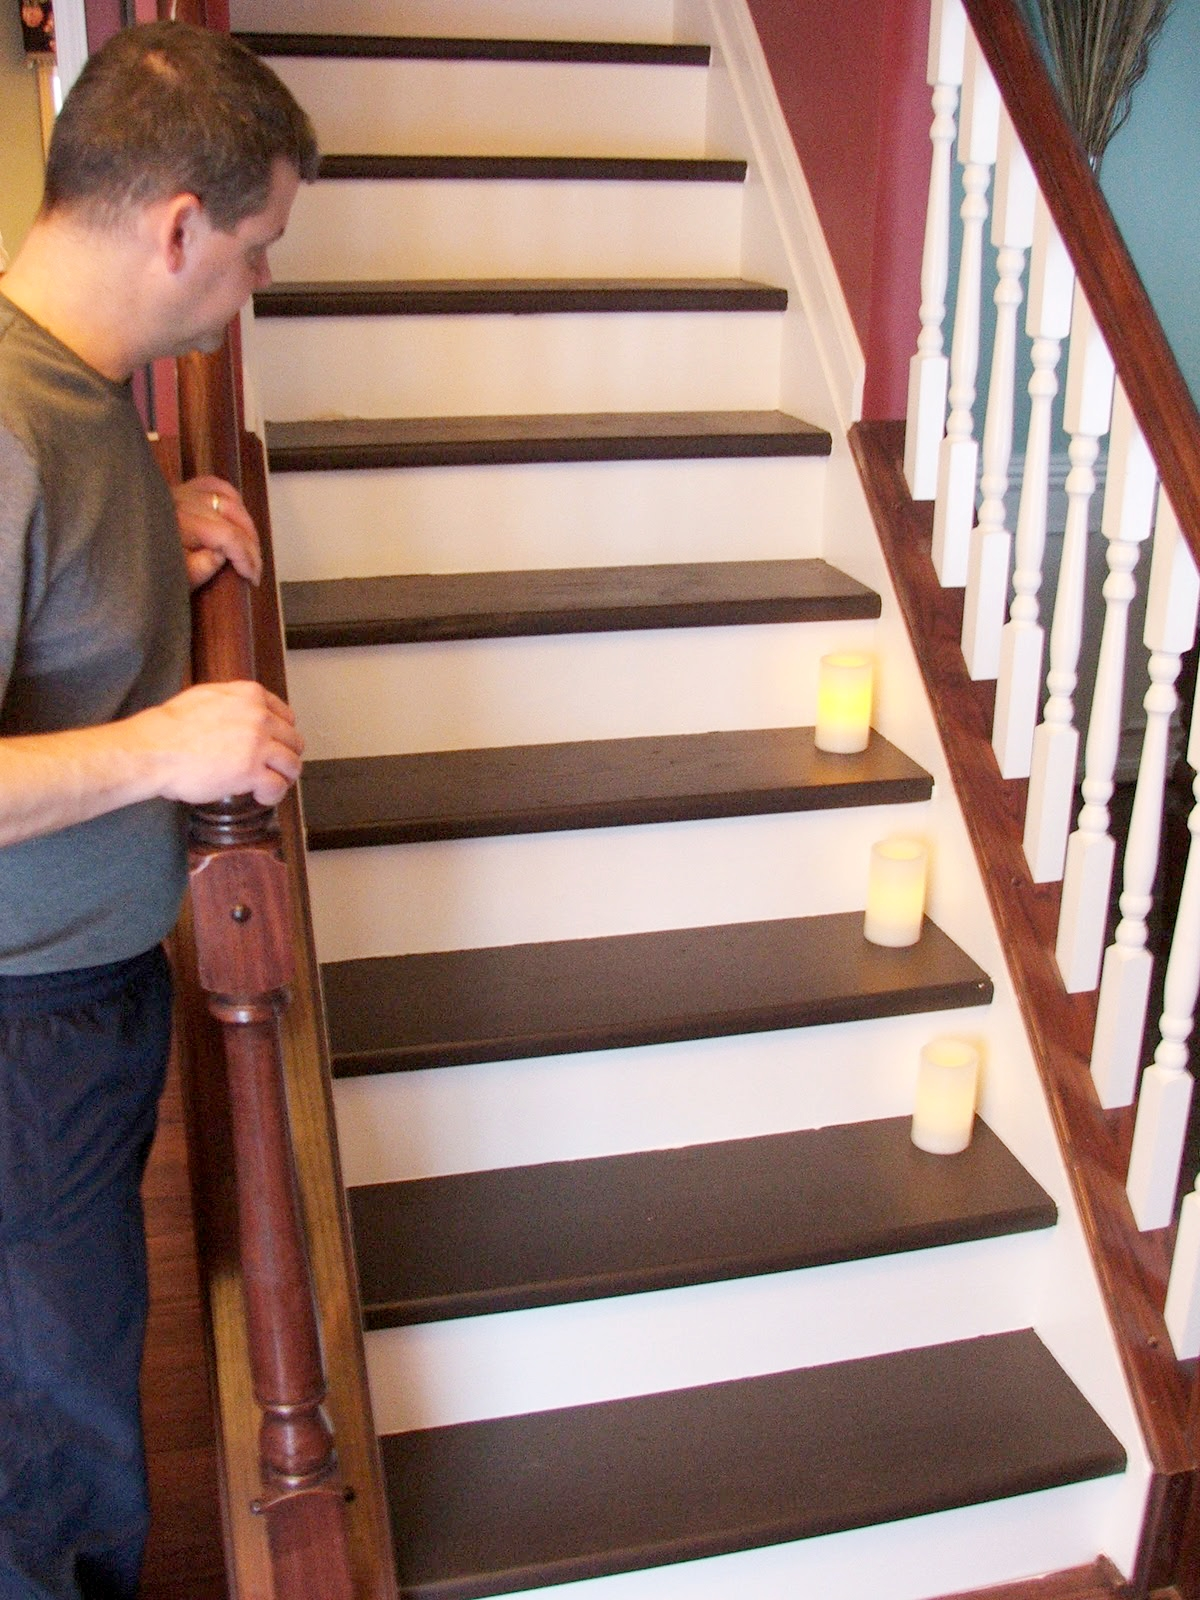 Remodelaholic Under 100 Carpeted Stair To Wooden Tread Makeover Diy Regarding Carpet For Wood Stairs (Image 15 of 15)